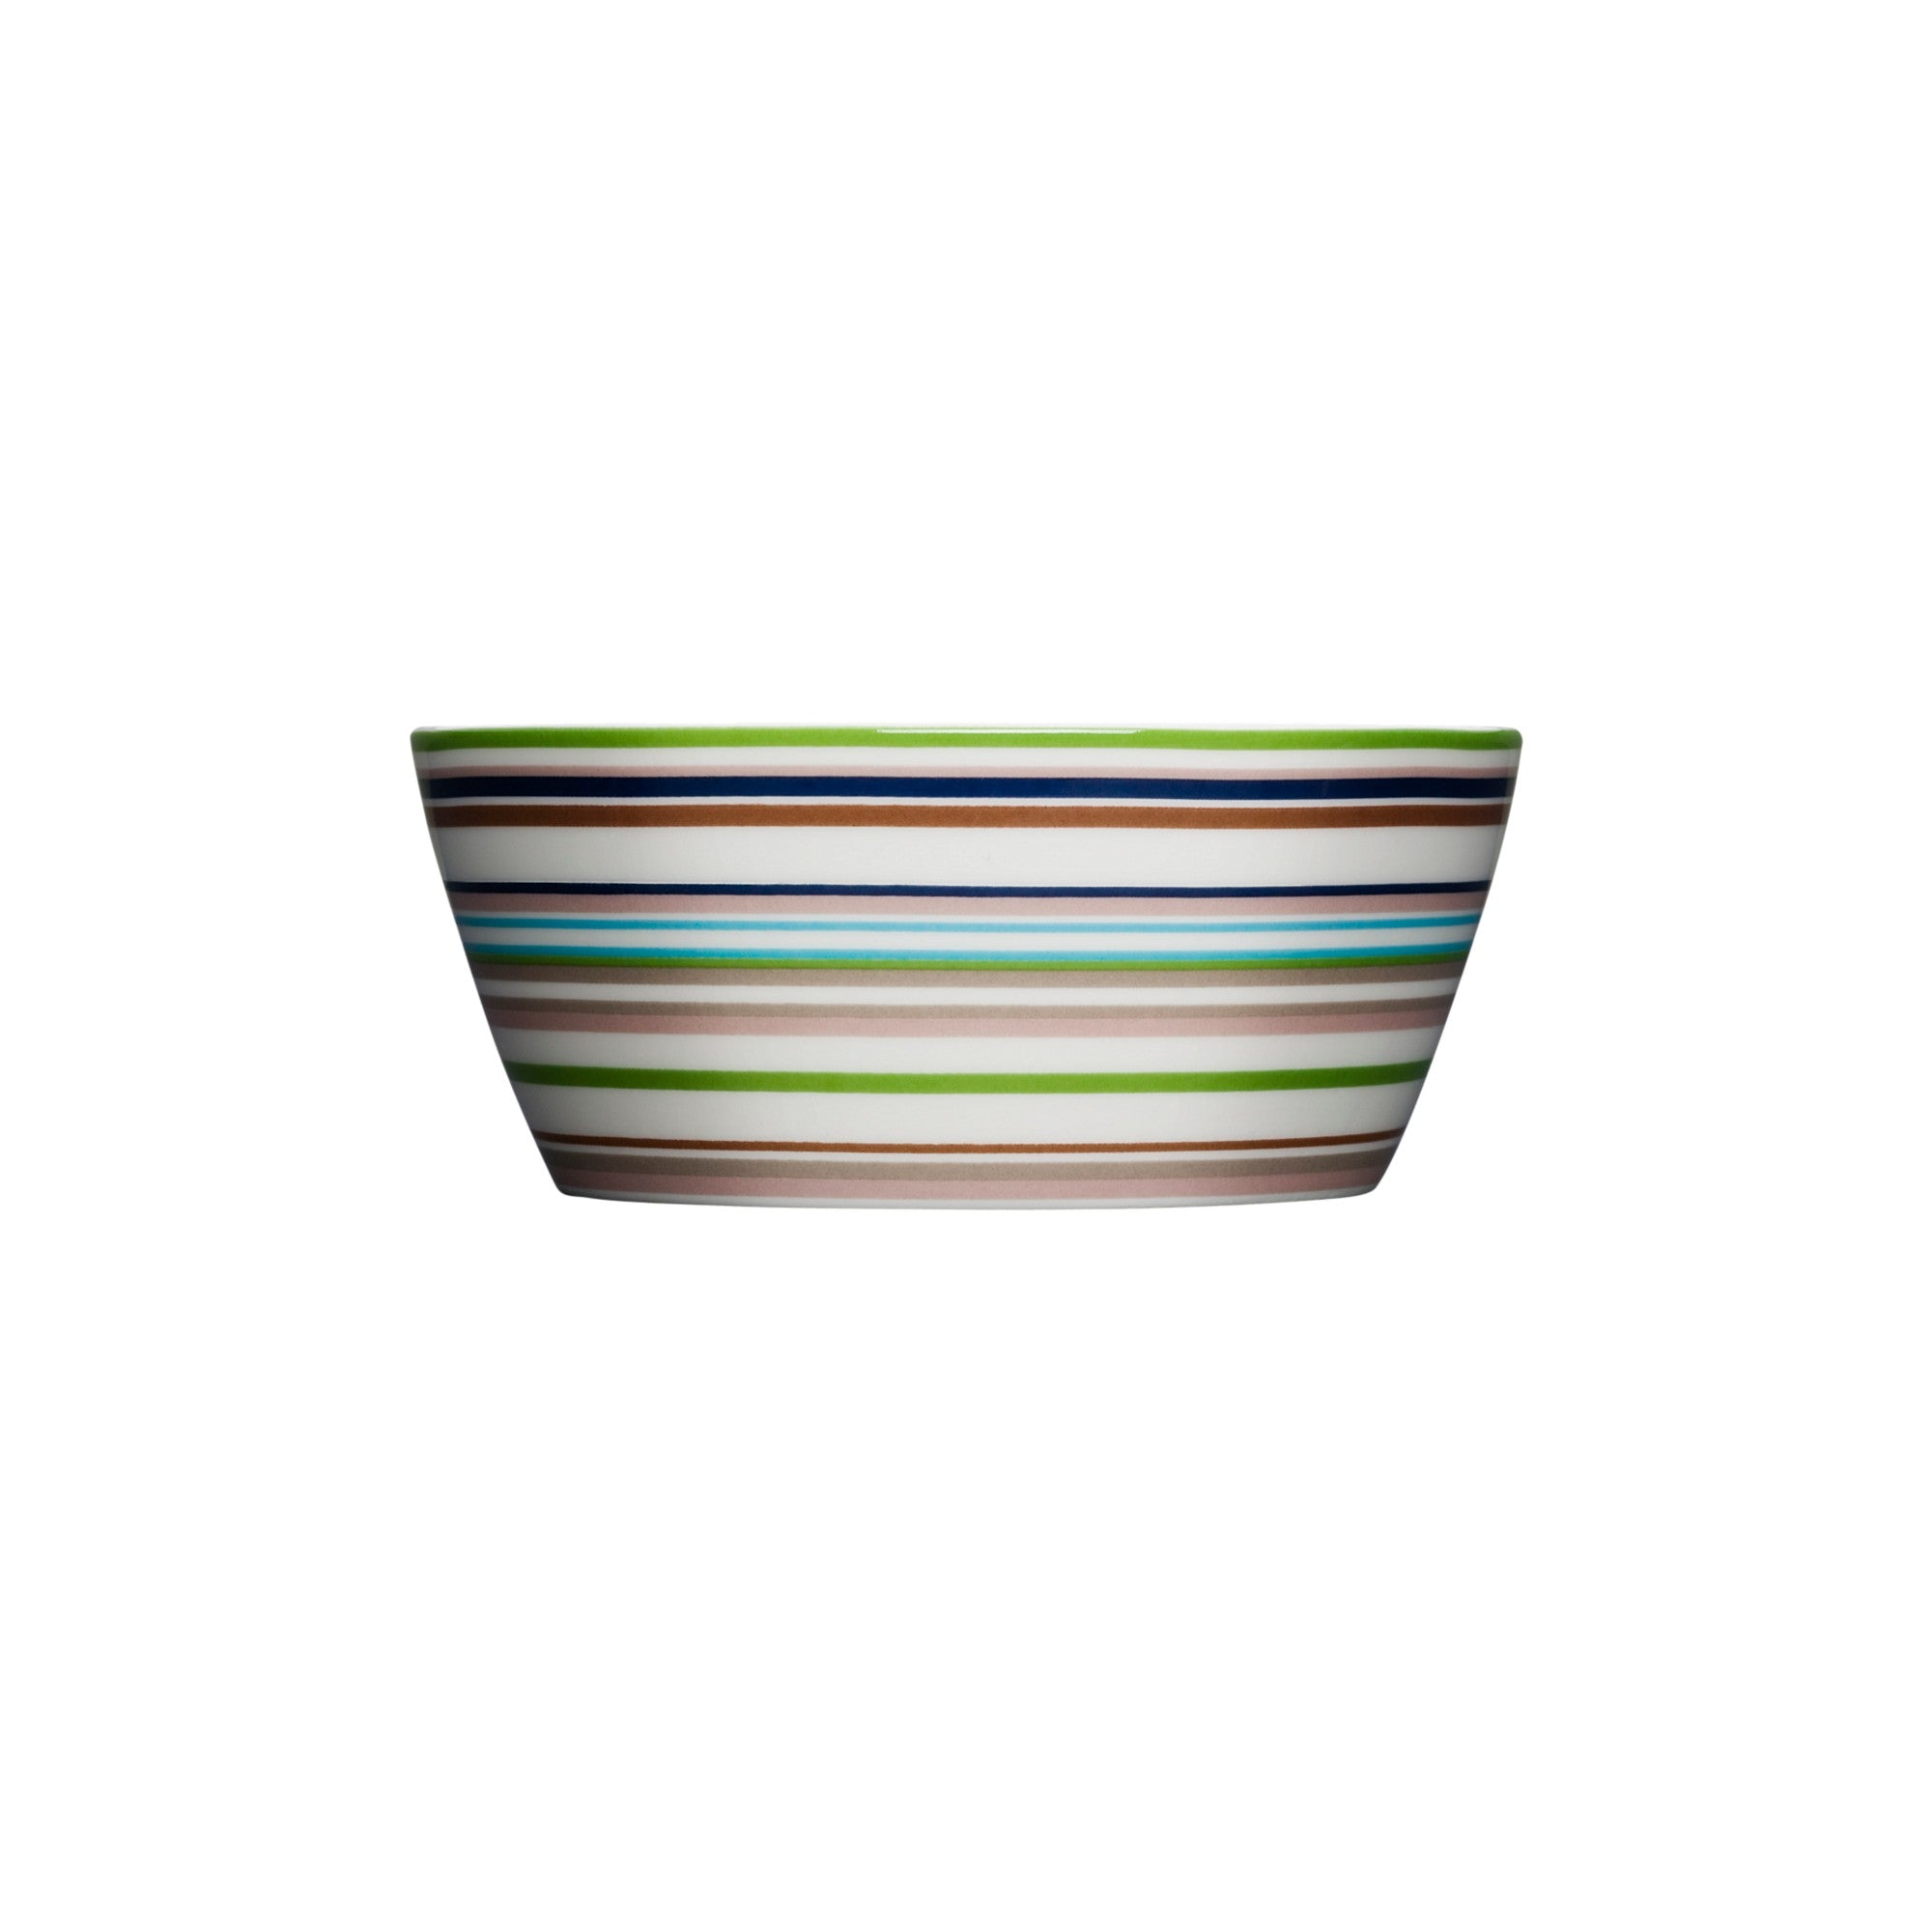 Origo dessert bowl 250ml / 8.5oz